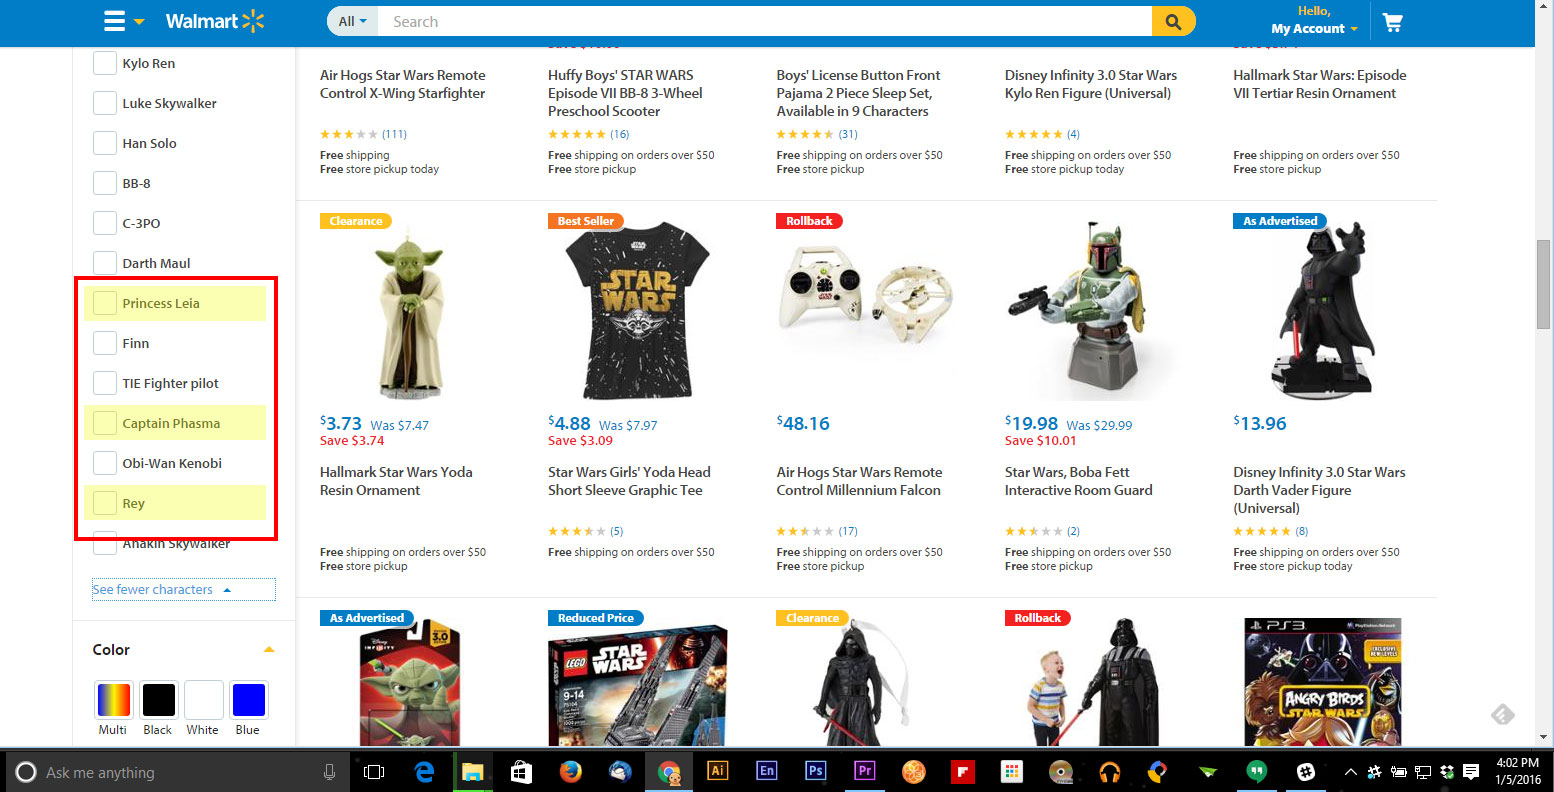 Walmart Character Listing for Star Wars